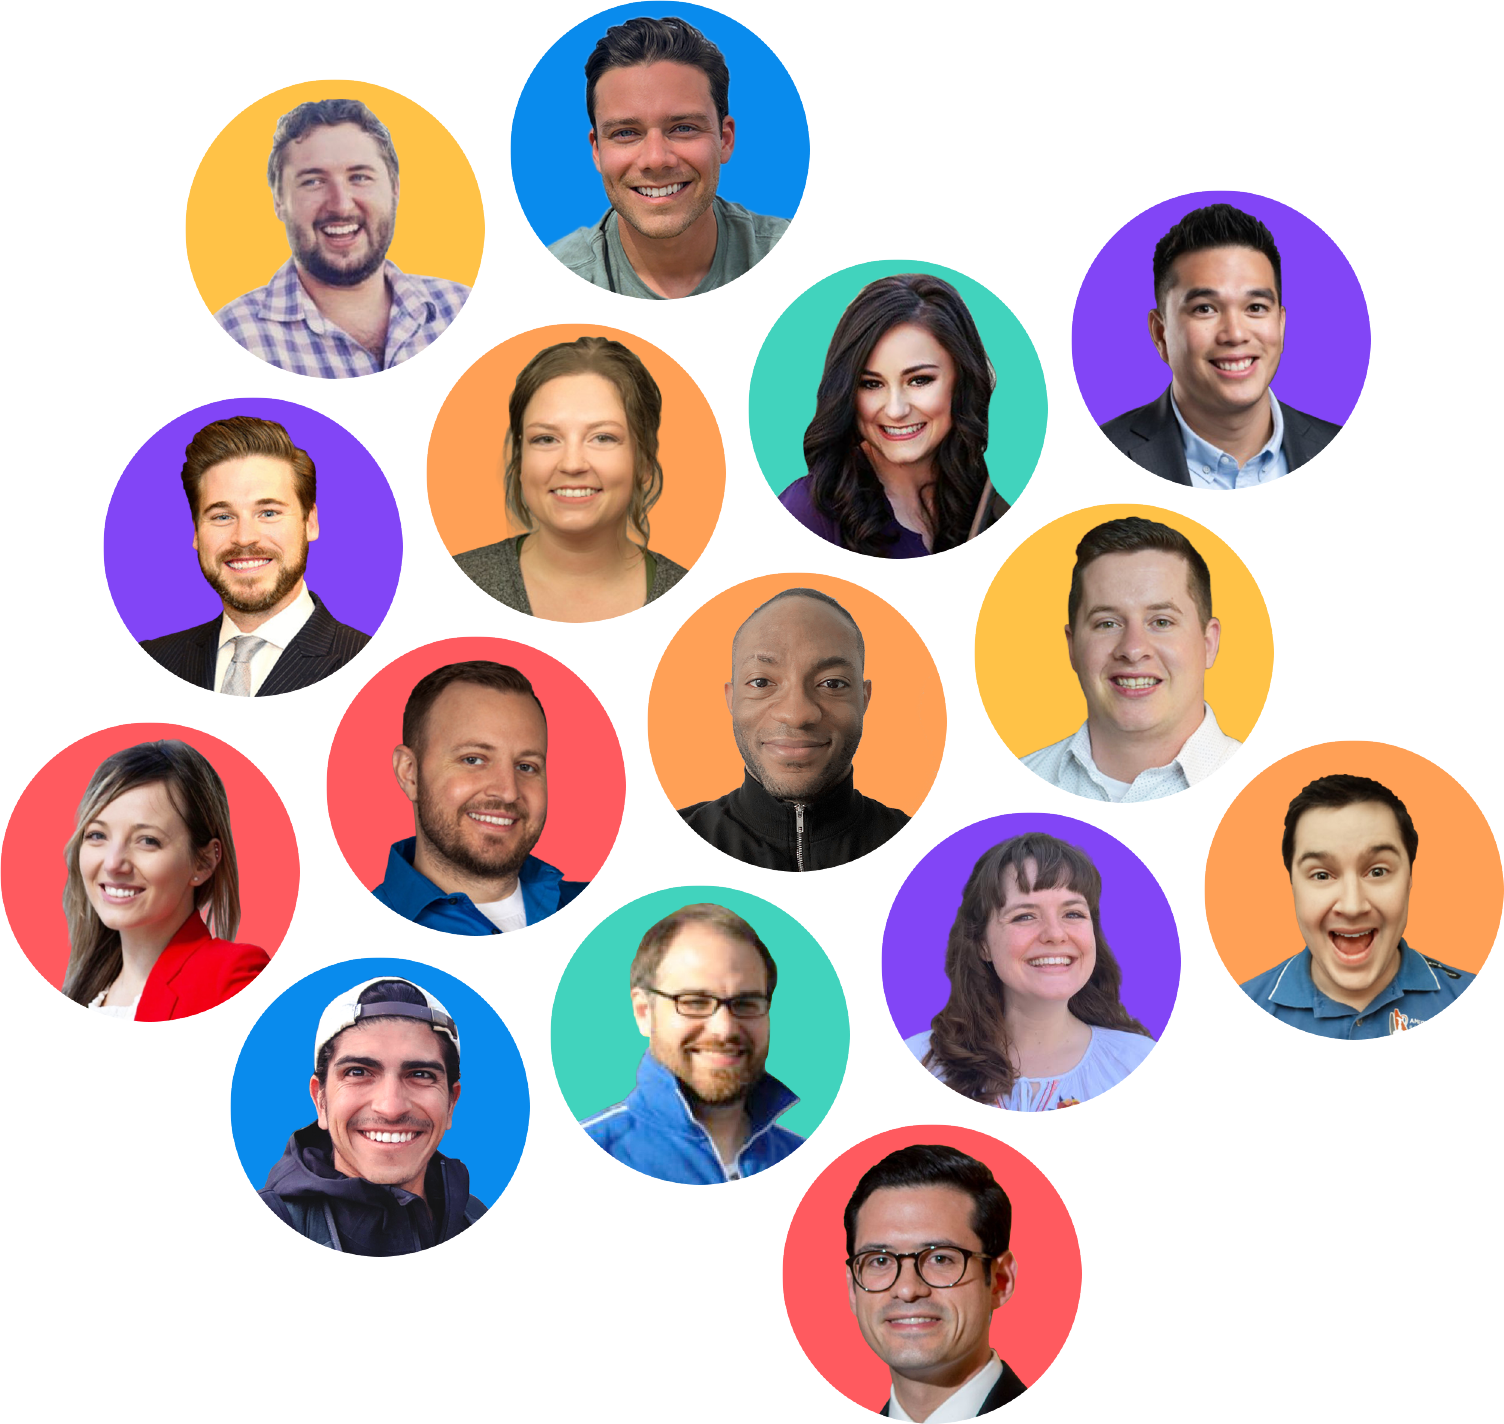 Cart.com's team of ecommerce growth experts